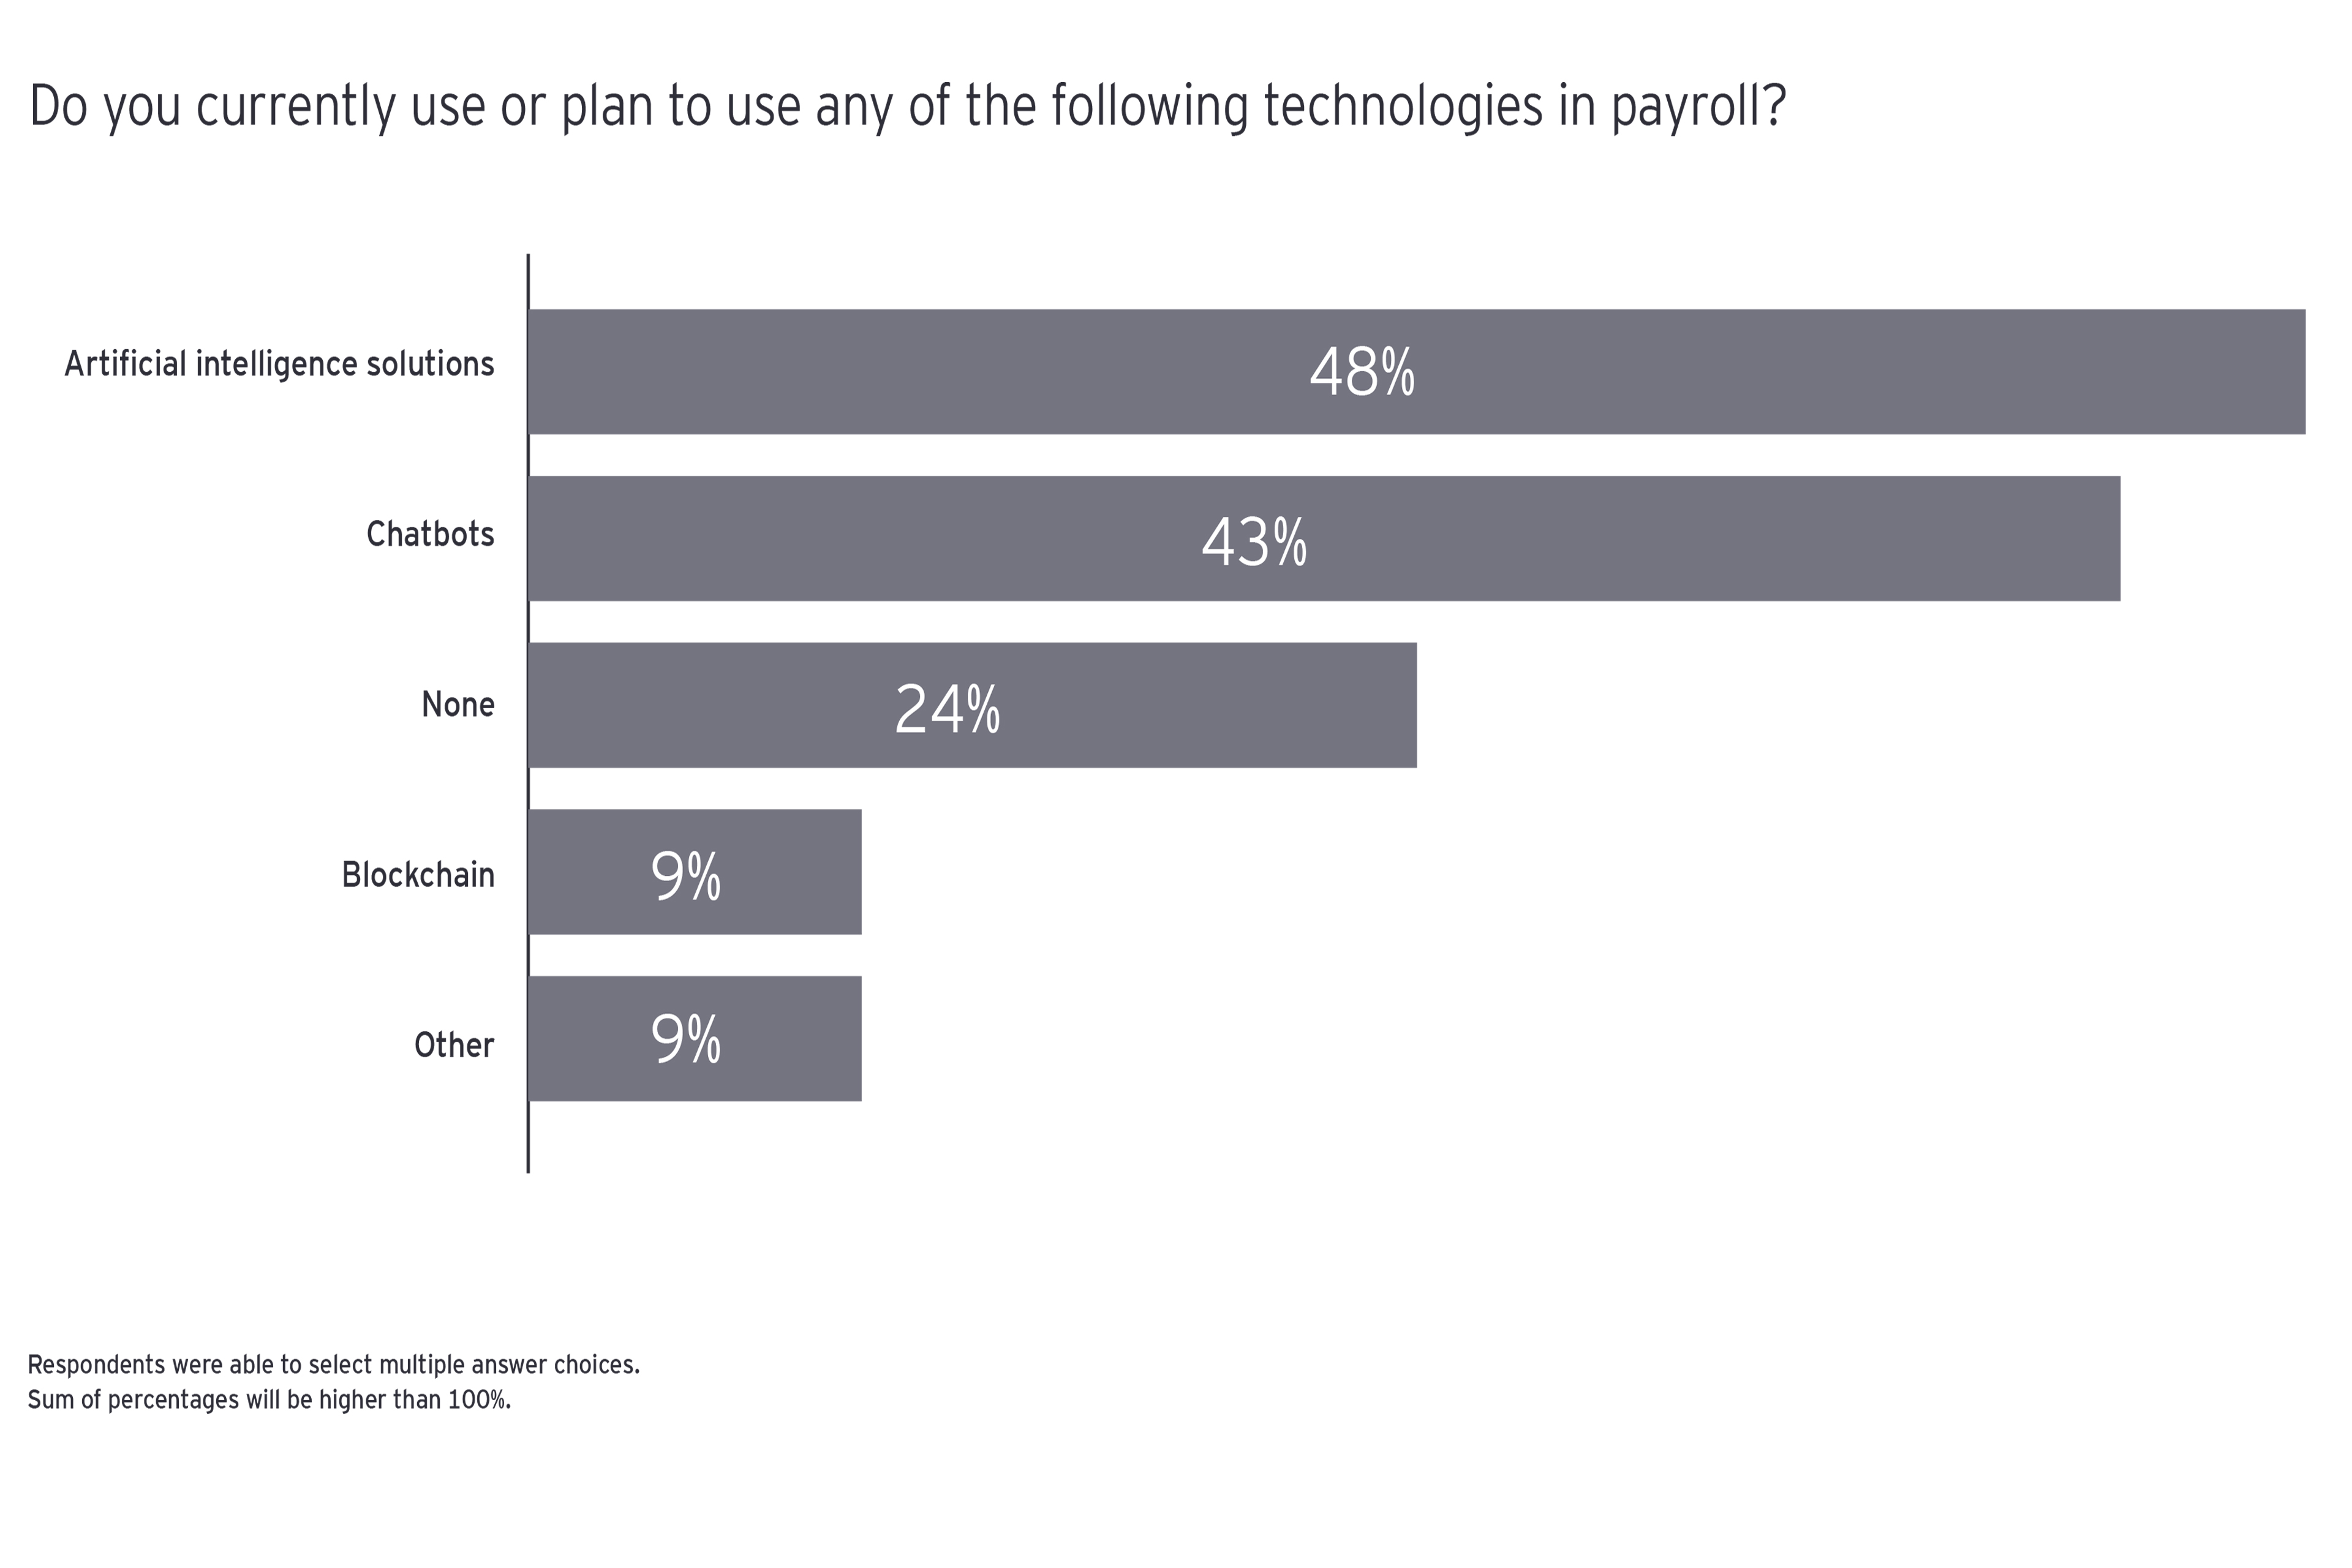 Do you currently use or plan to use any of the following technologies in payroll